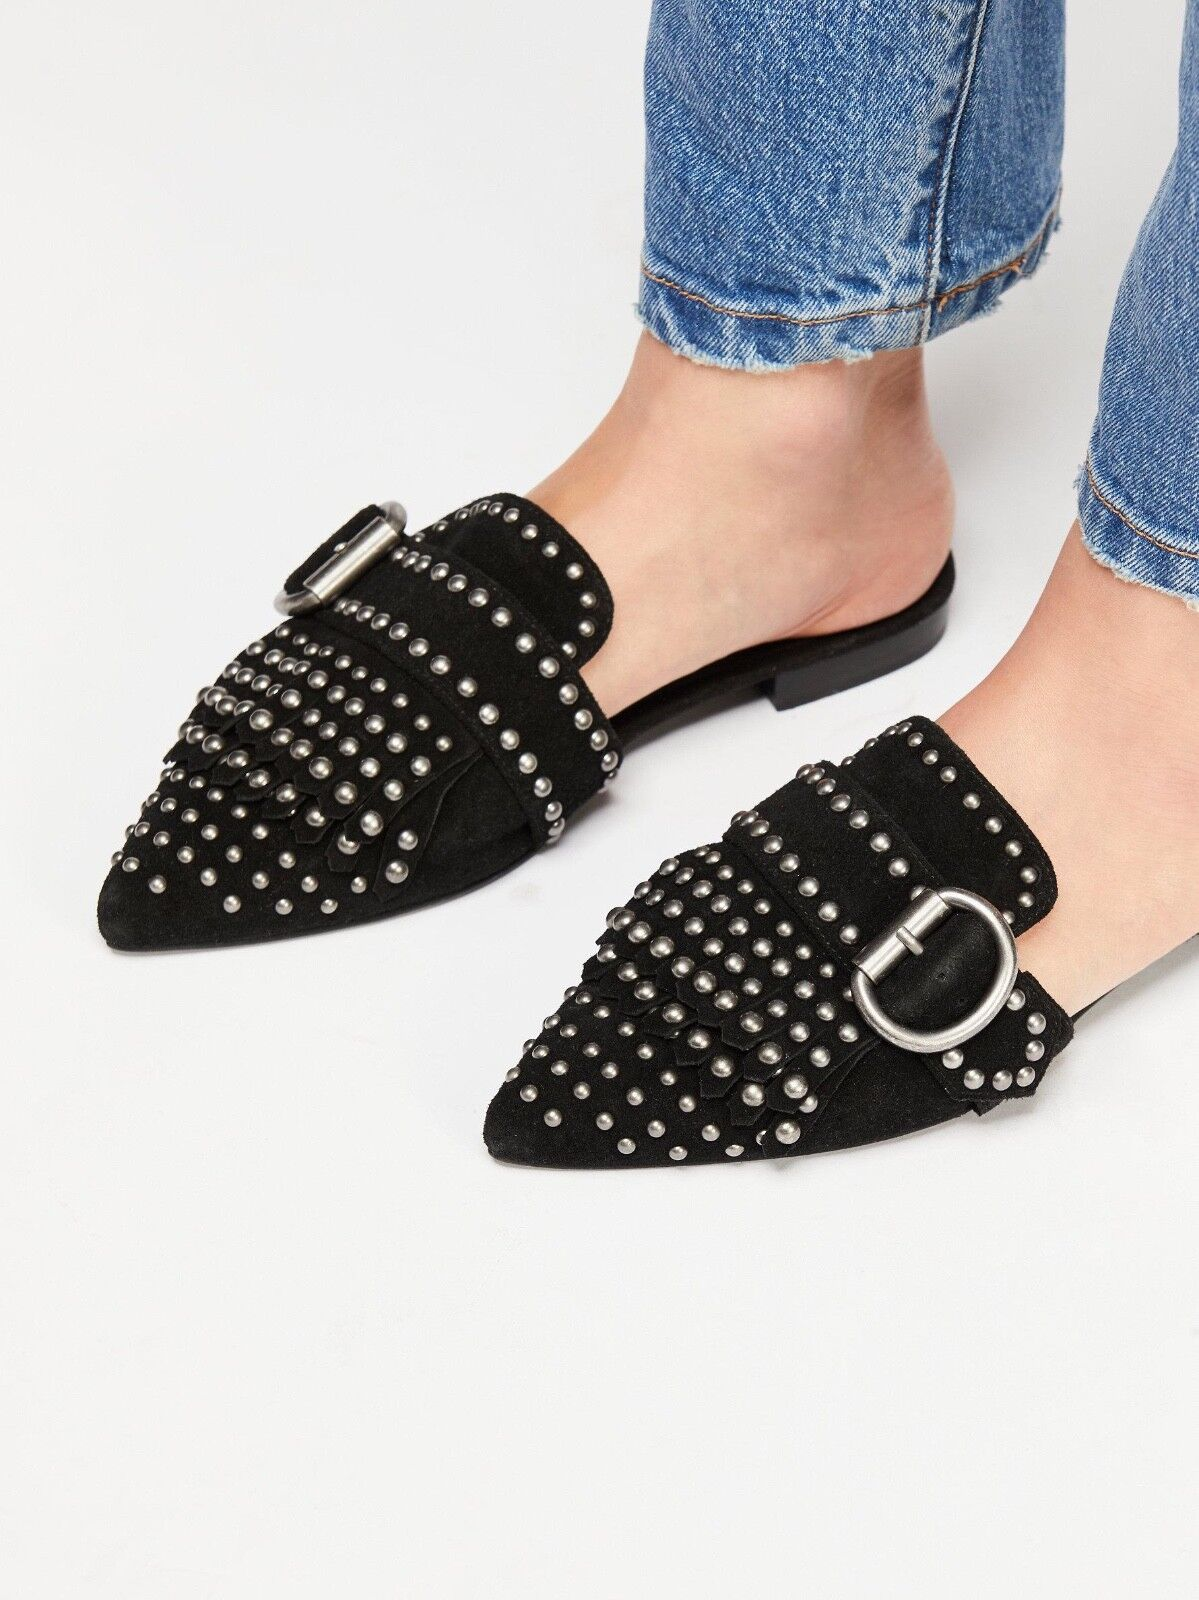 NEW Free People + Jeffrey Campbell Wanderer Stud Flat Dimensione 8 MSRP   148